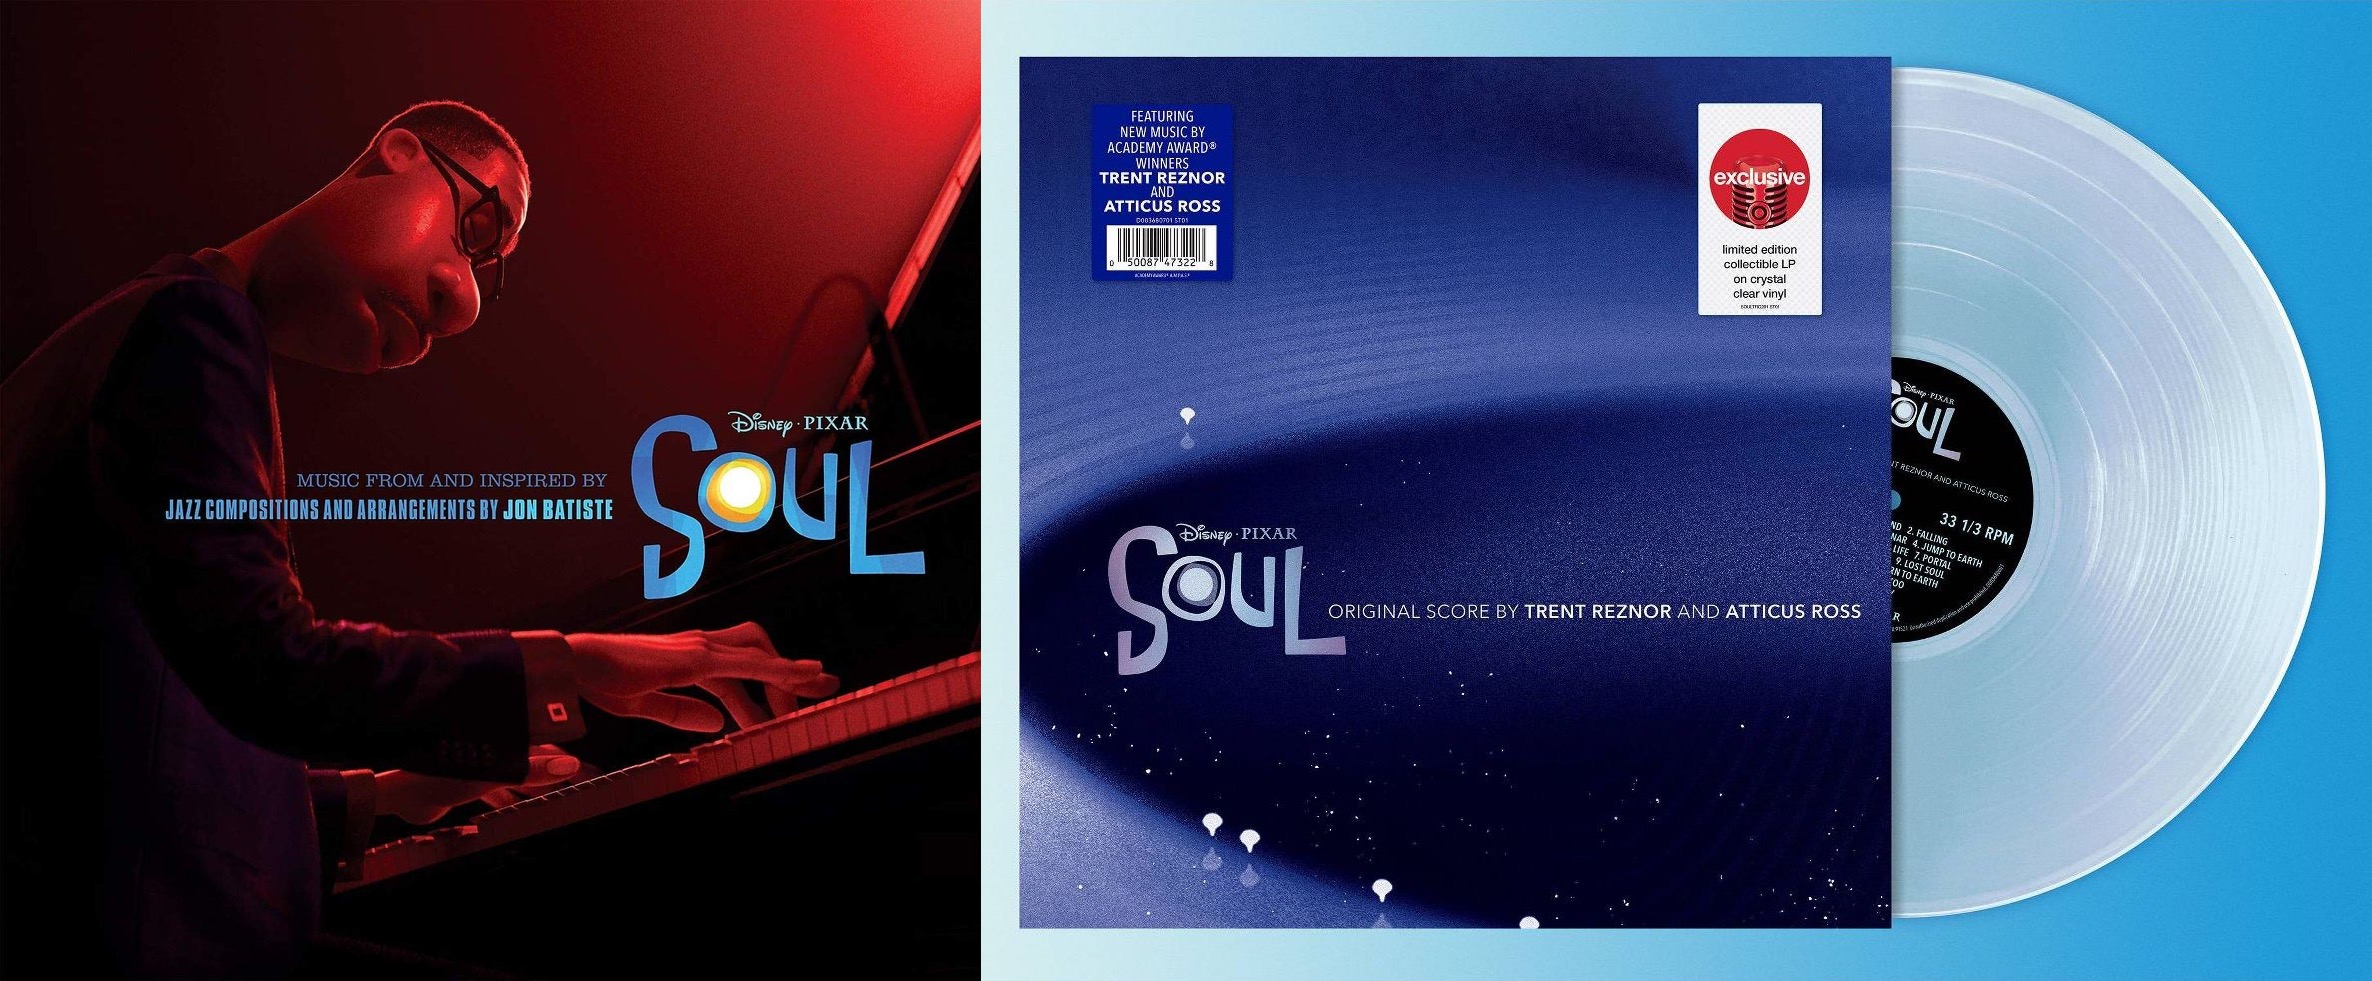 Soul' Soundtrack Review — Top 3 Tracks From the Jazzy, Haunting, Ethereal,  and Touching Score | Pixar Post